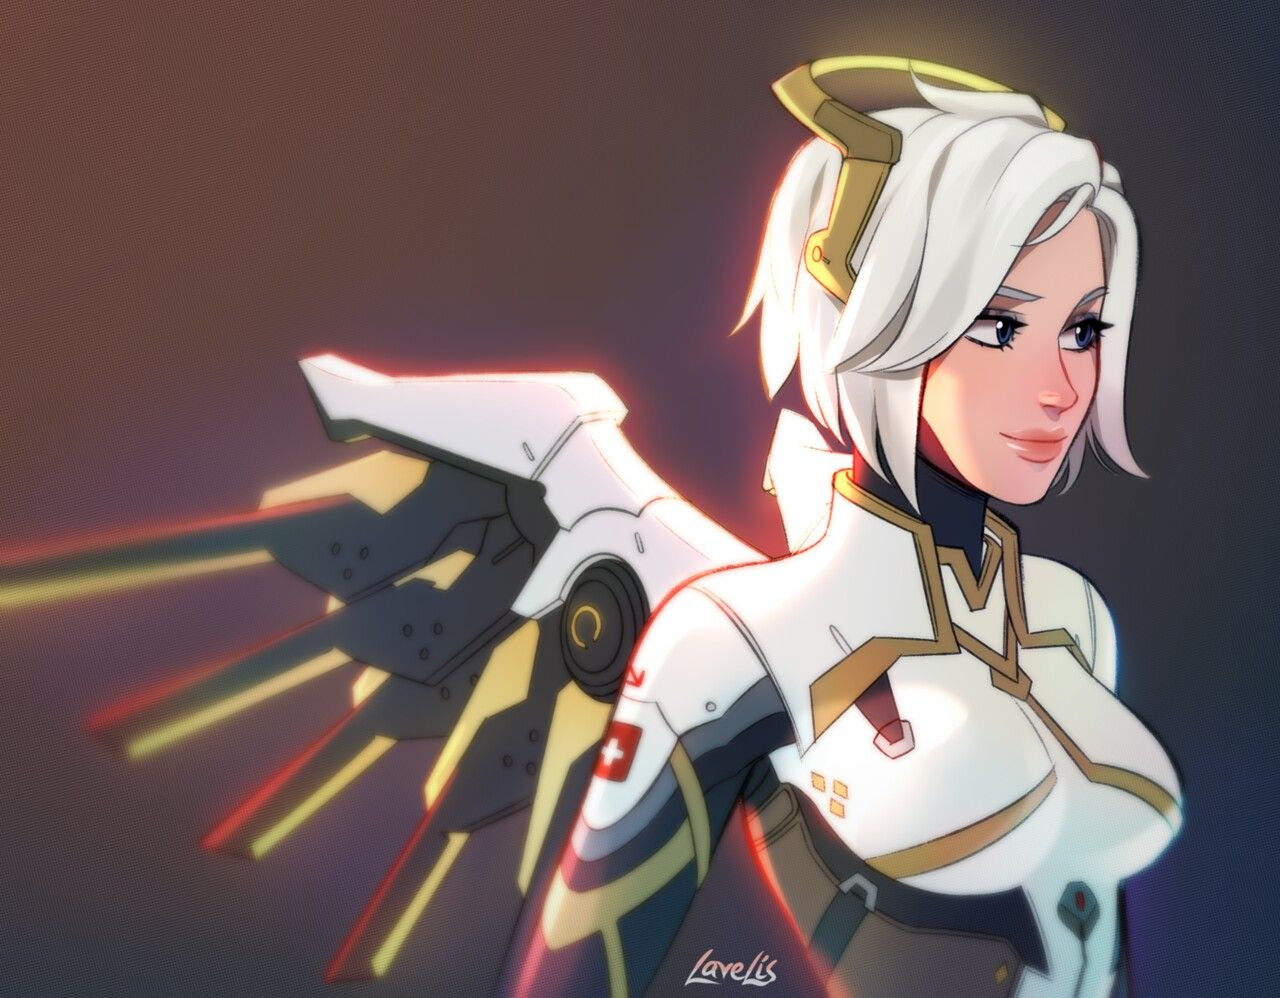 Pin By Patrick Manion On Overwatch Overwatch 2 Overwatch Drawings Overwatch